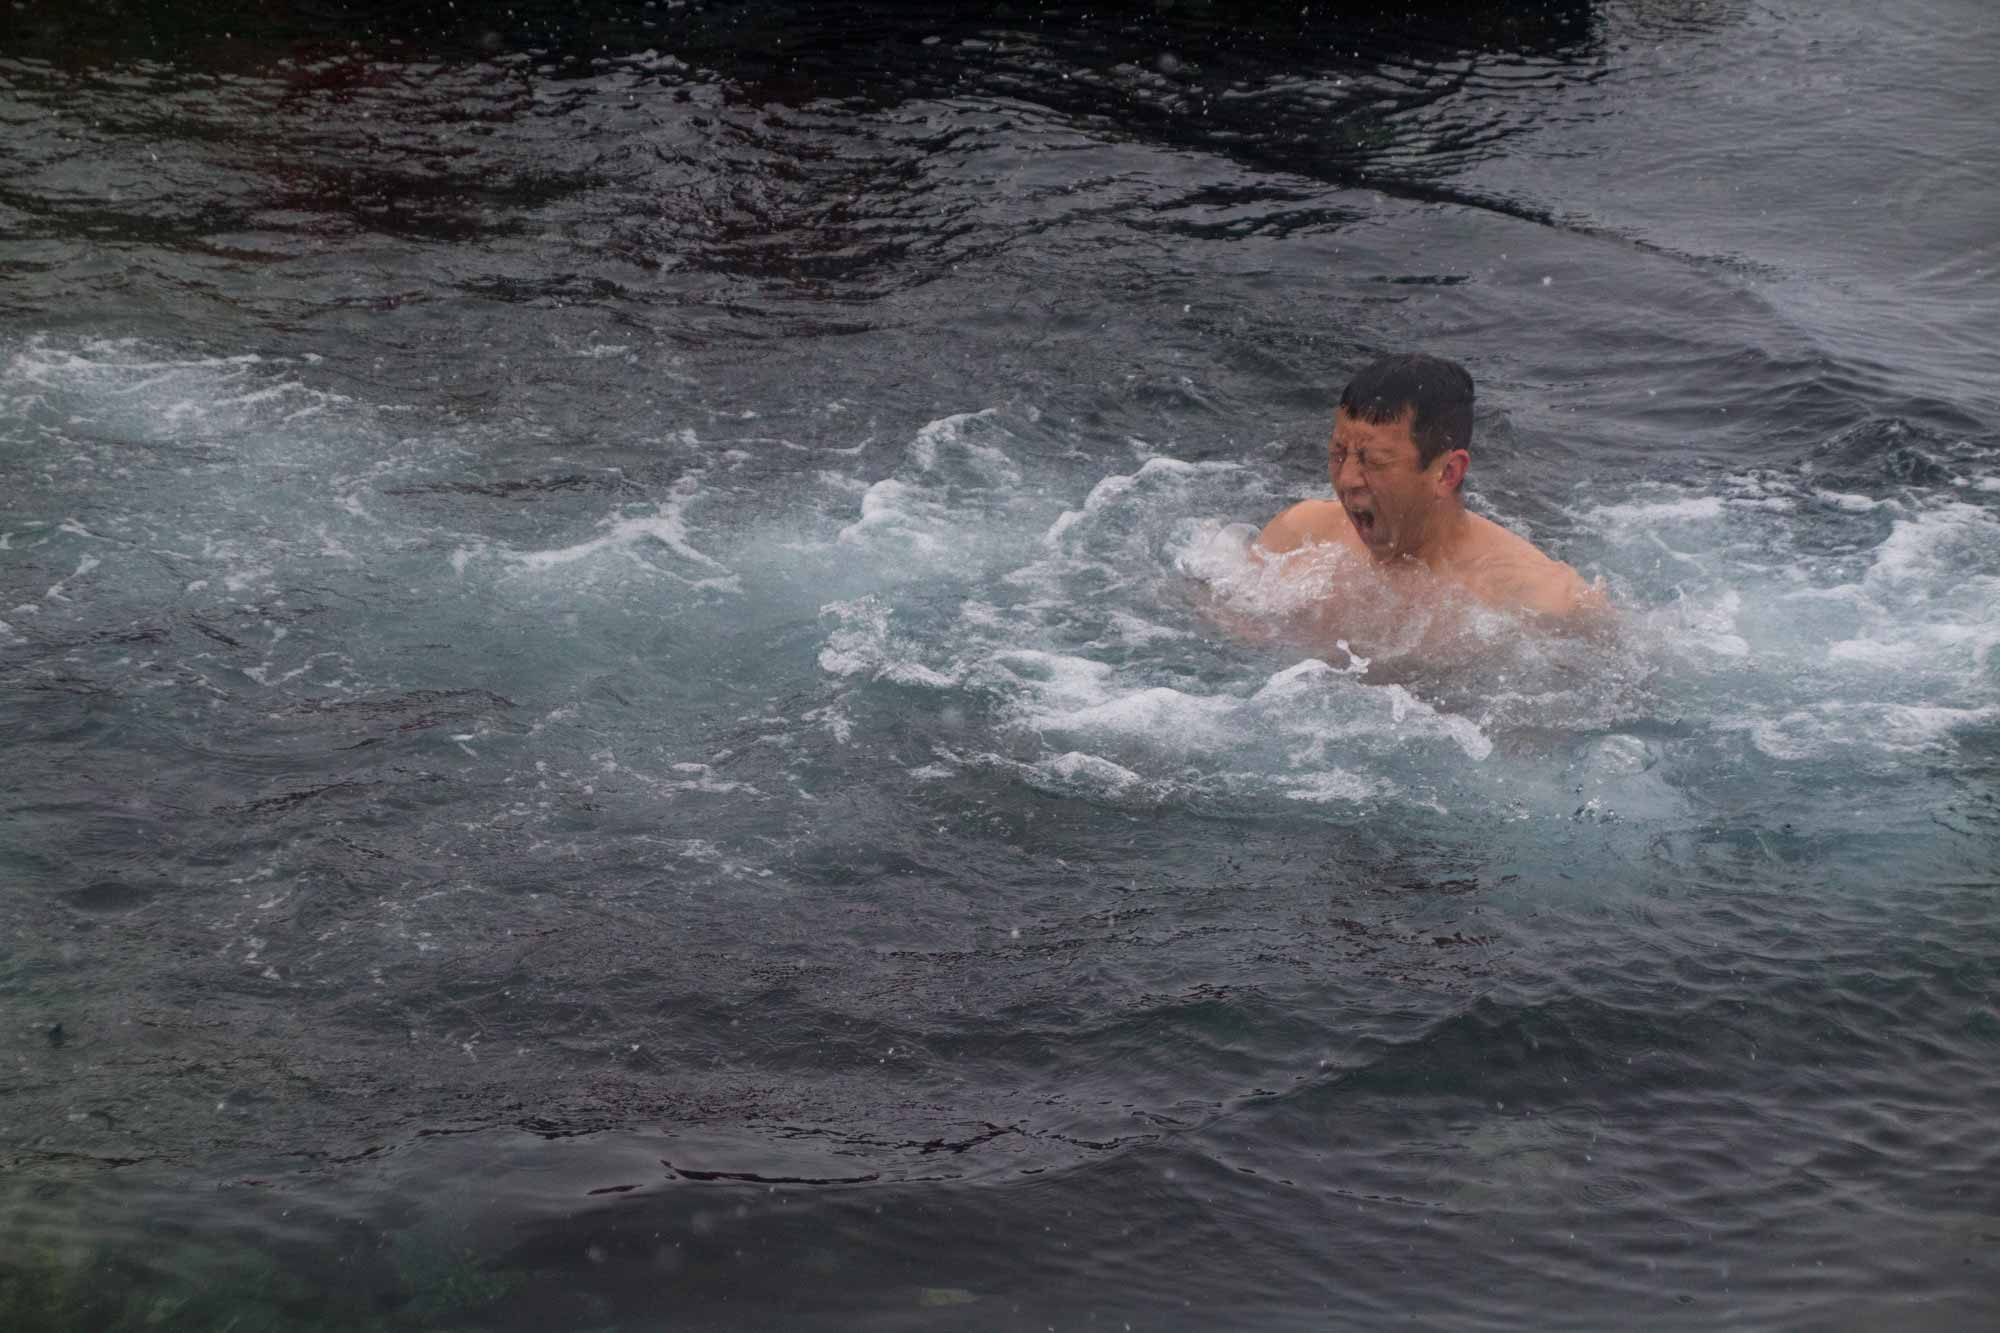 Halef taking a polar dip in the waters of Antarctica